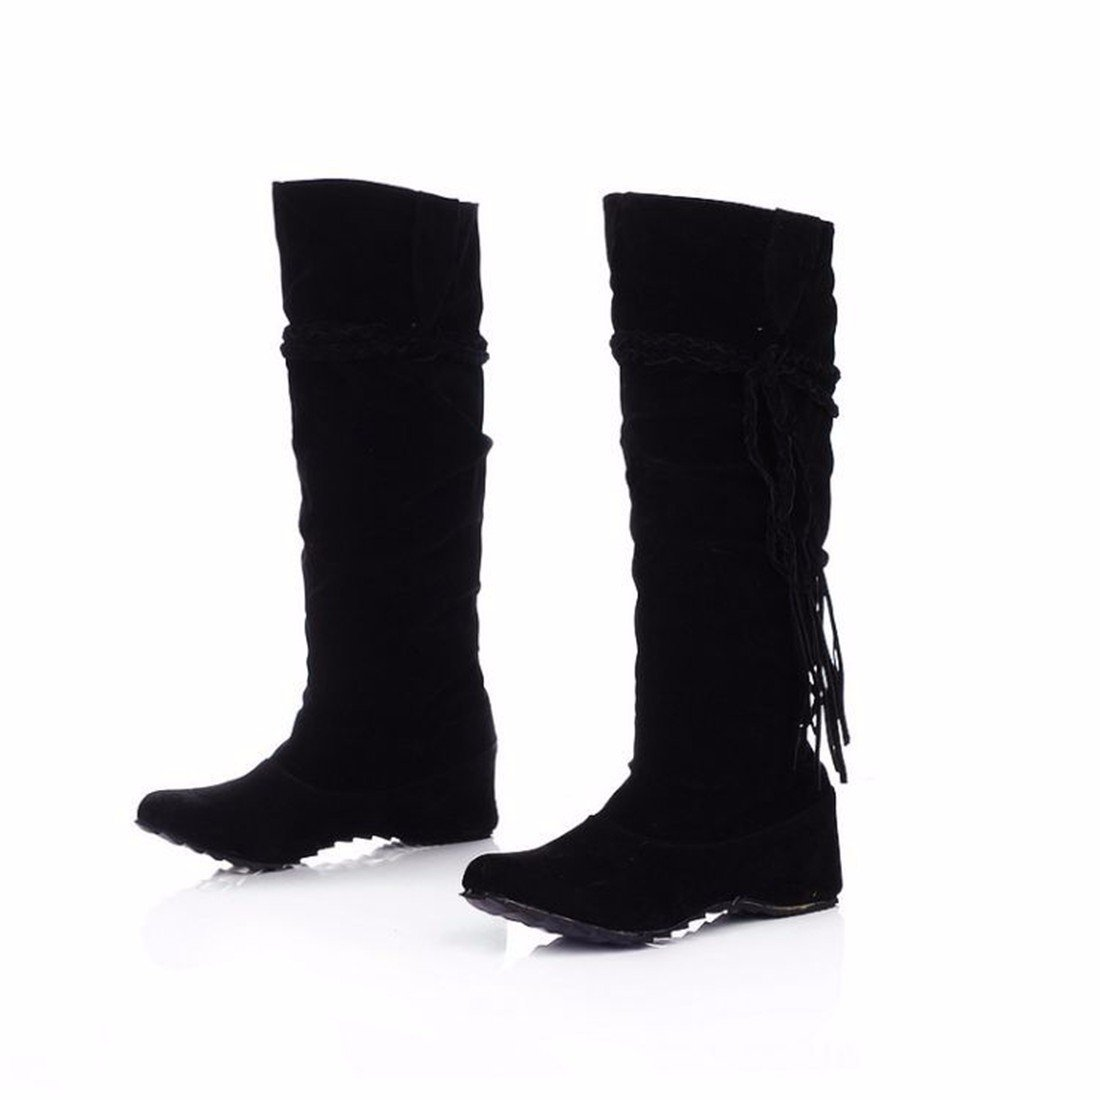 The increase in size of winter scrub fringed boots high boots students US10.5 / EU42 / UK8.5 / CN43|Black (plus cashmere)